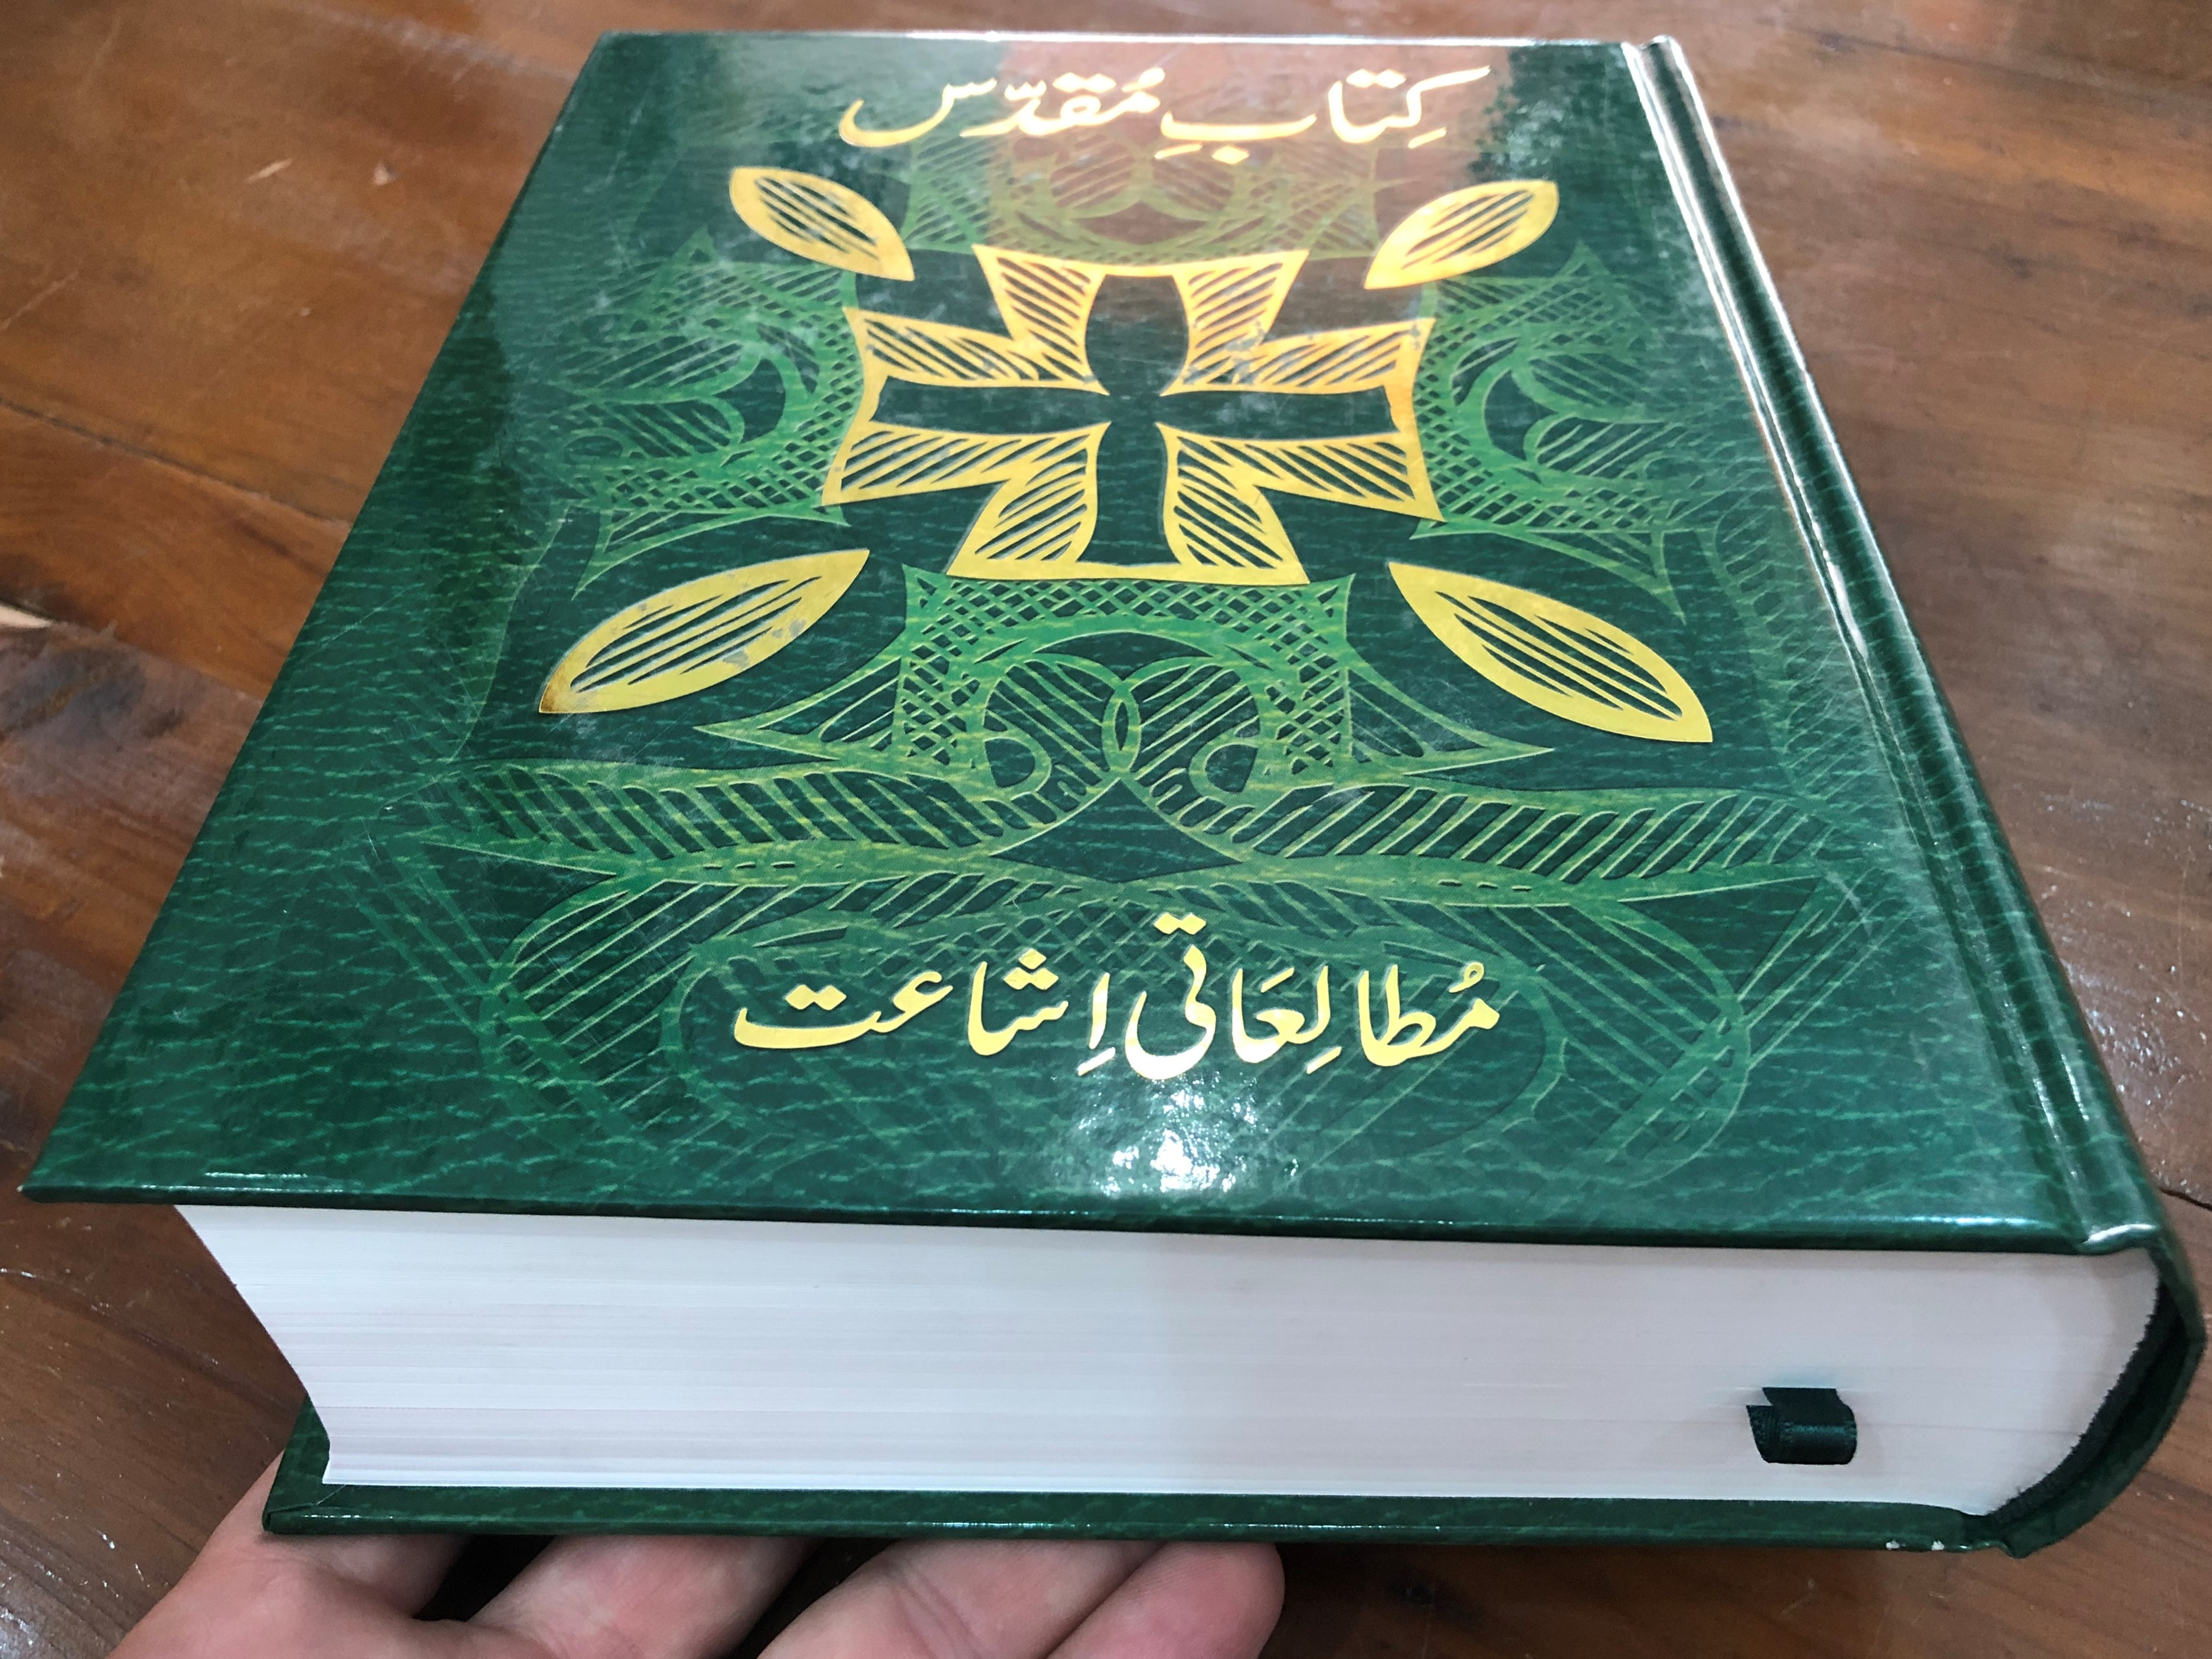 the-ultimate-urdu-study-bible-urdu-revised-version-text-3rd-edition-study-notes-charts-illustrations-and-16-color-maps-pakistan-bible-society-2017-3-.jpg